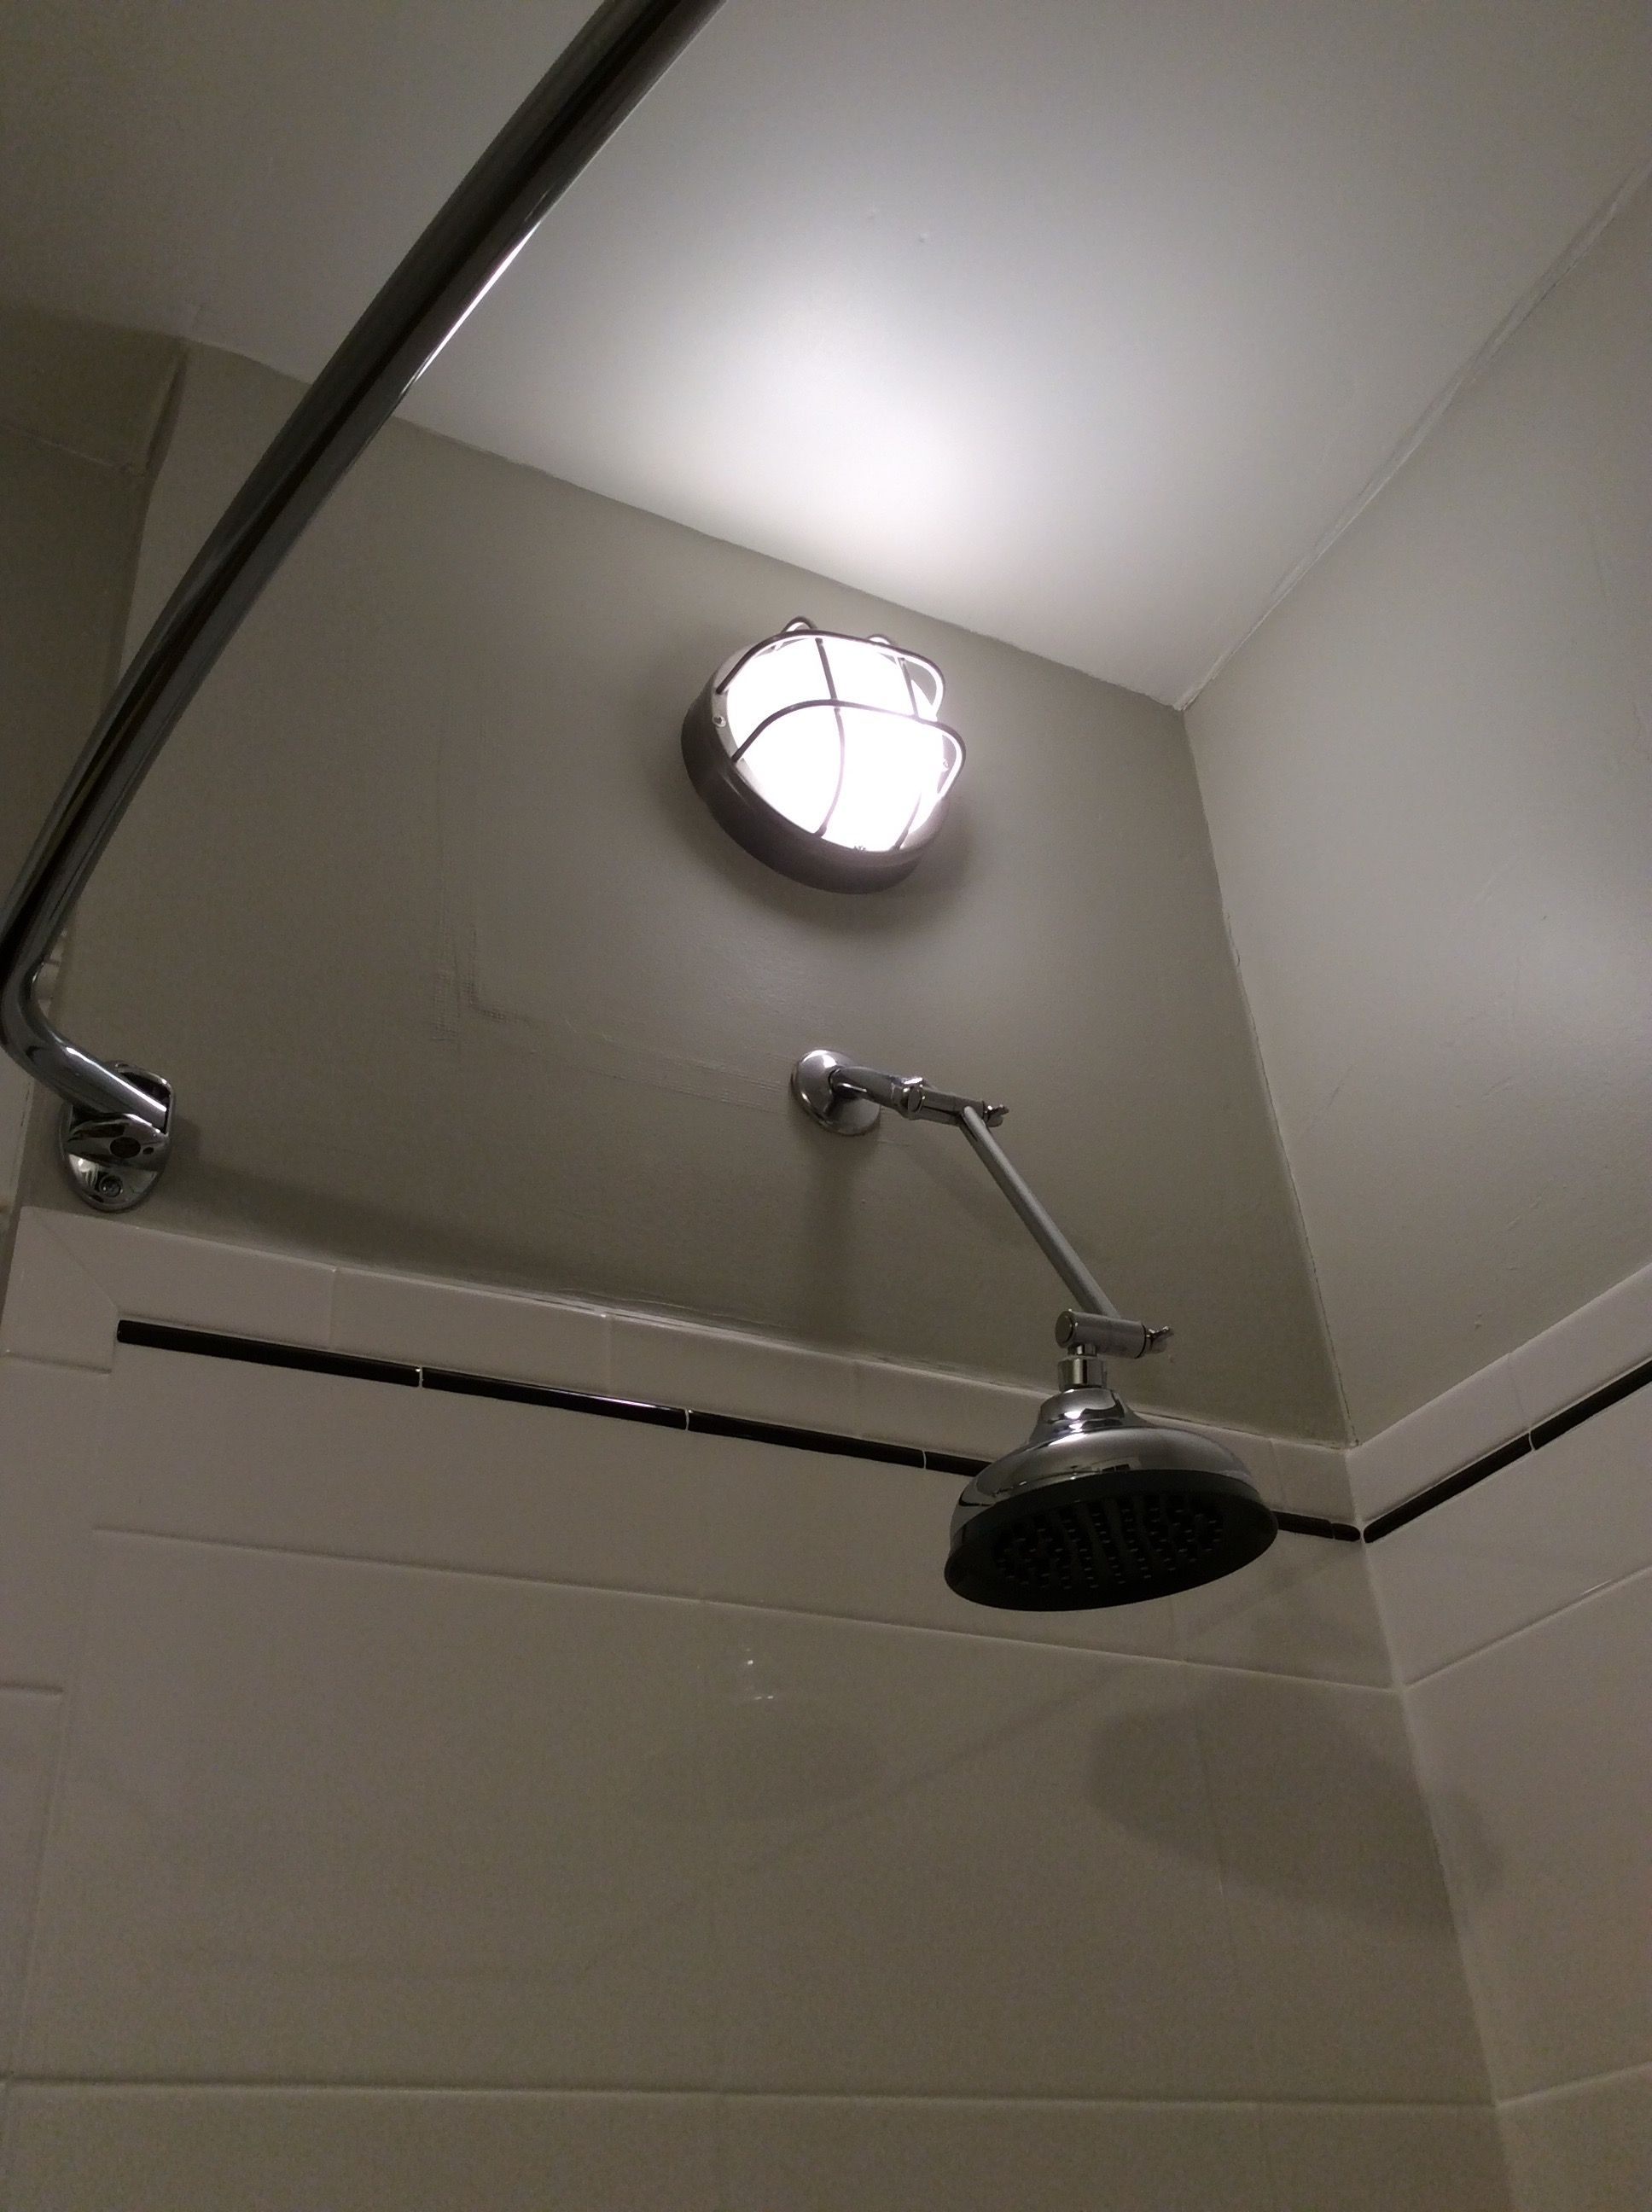 19) Installed a marine bulkhead light over the shower head and re ...